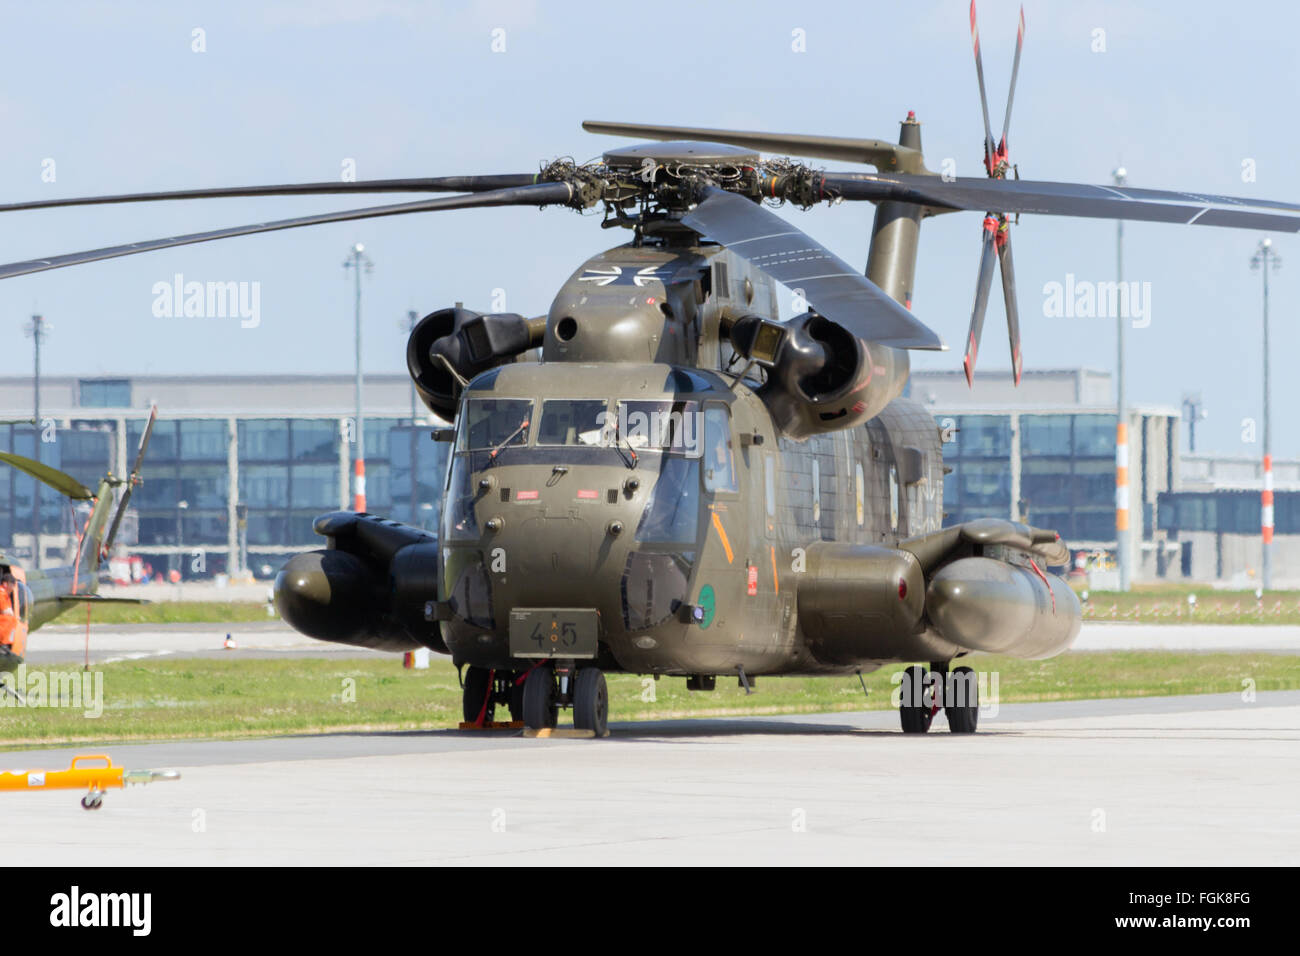 German army Sikorsky CH-53 transport helicopter at the International Aerospace Exhibition ILA. - Stock Image